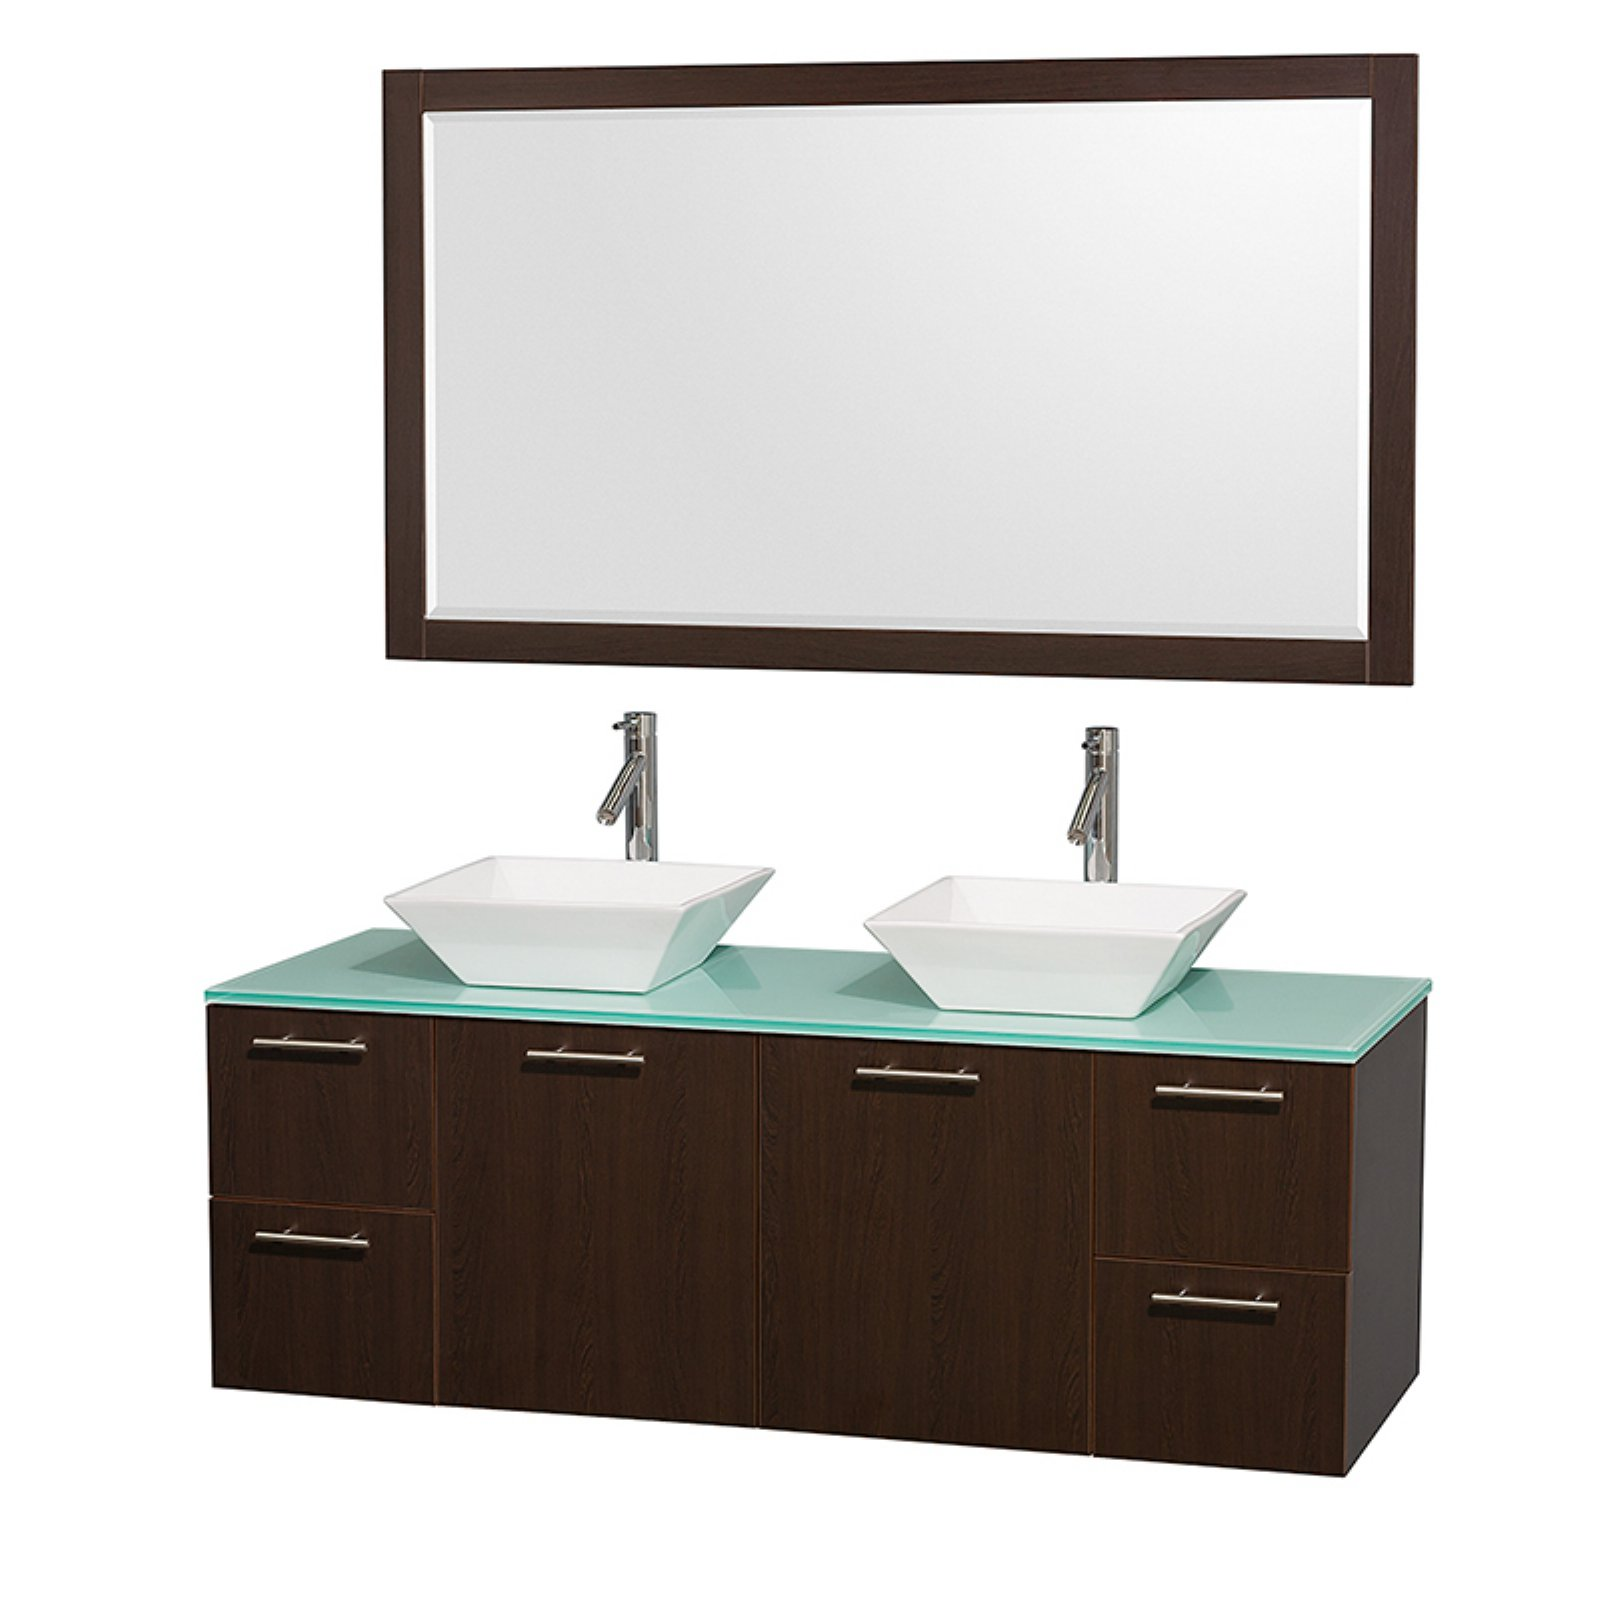 """Wyndham Collection Amare 60"""" Double Bathroom Vanity in Espresso with Green Glass Top with Bone Porcelain Sinks and 58"""" Mirror"""